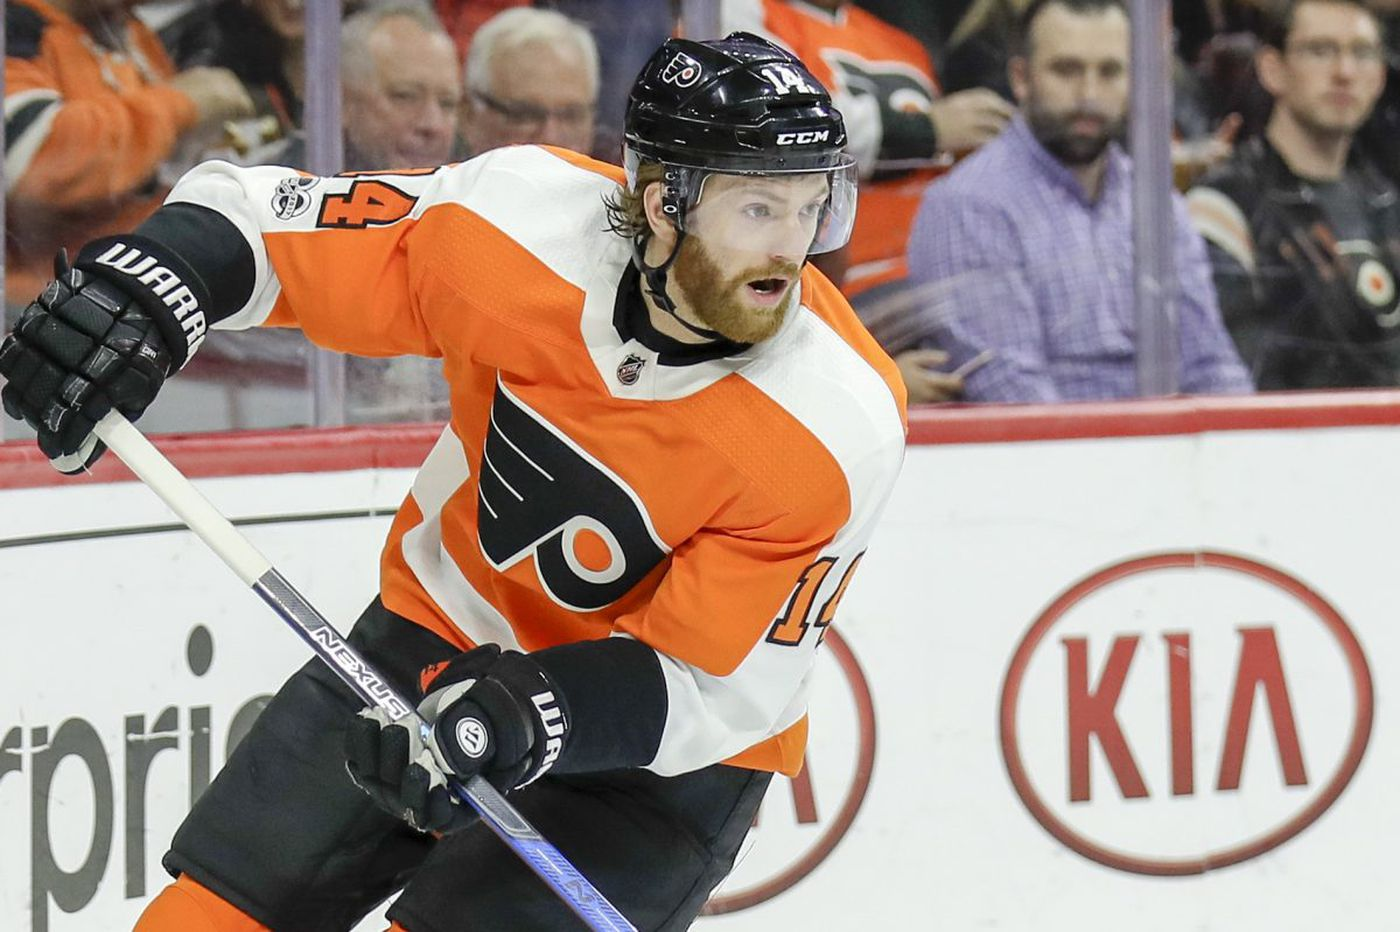 Flyers-Jets preview: Intriguing matchup of top-line centers